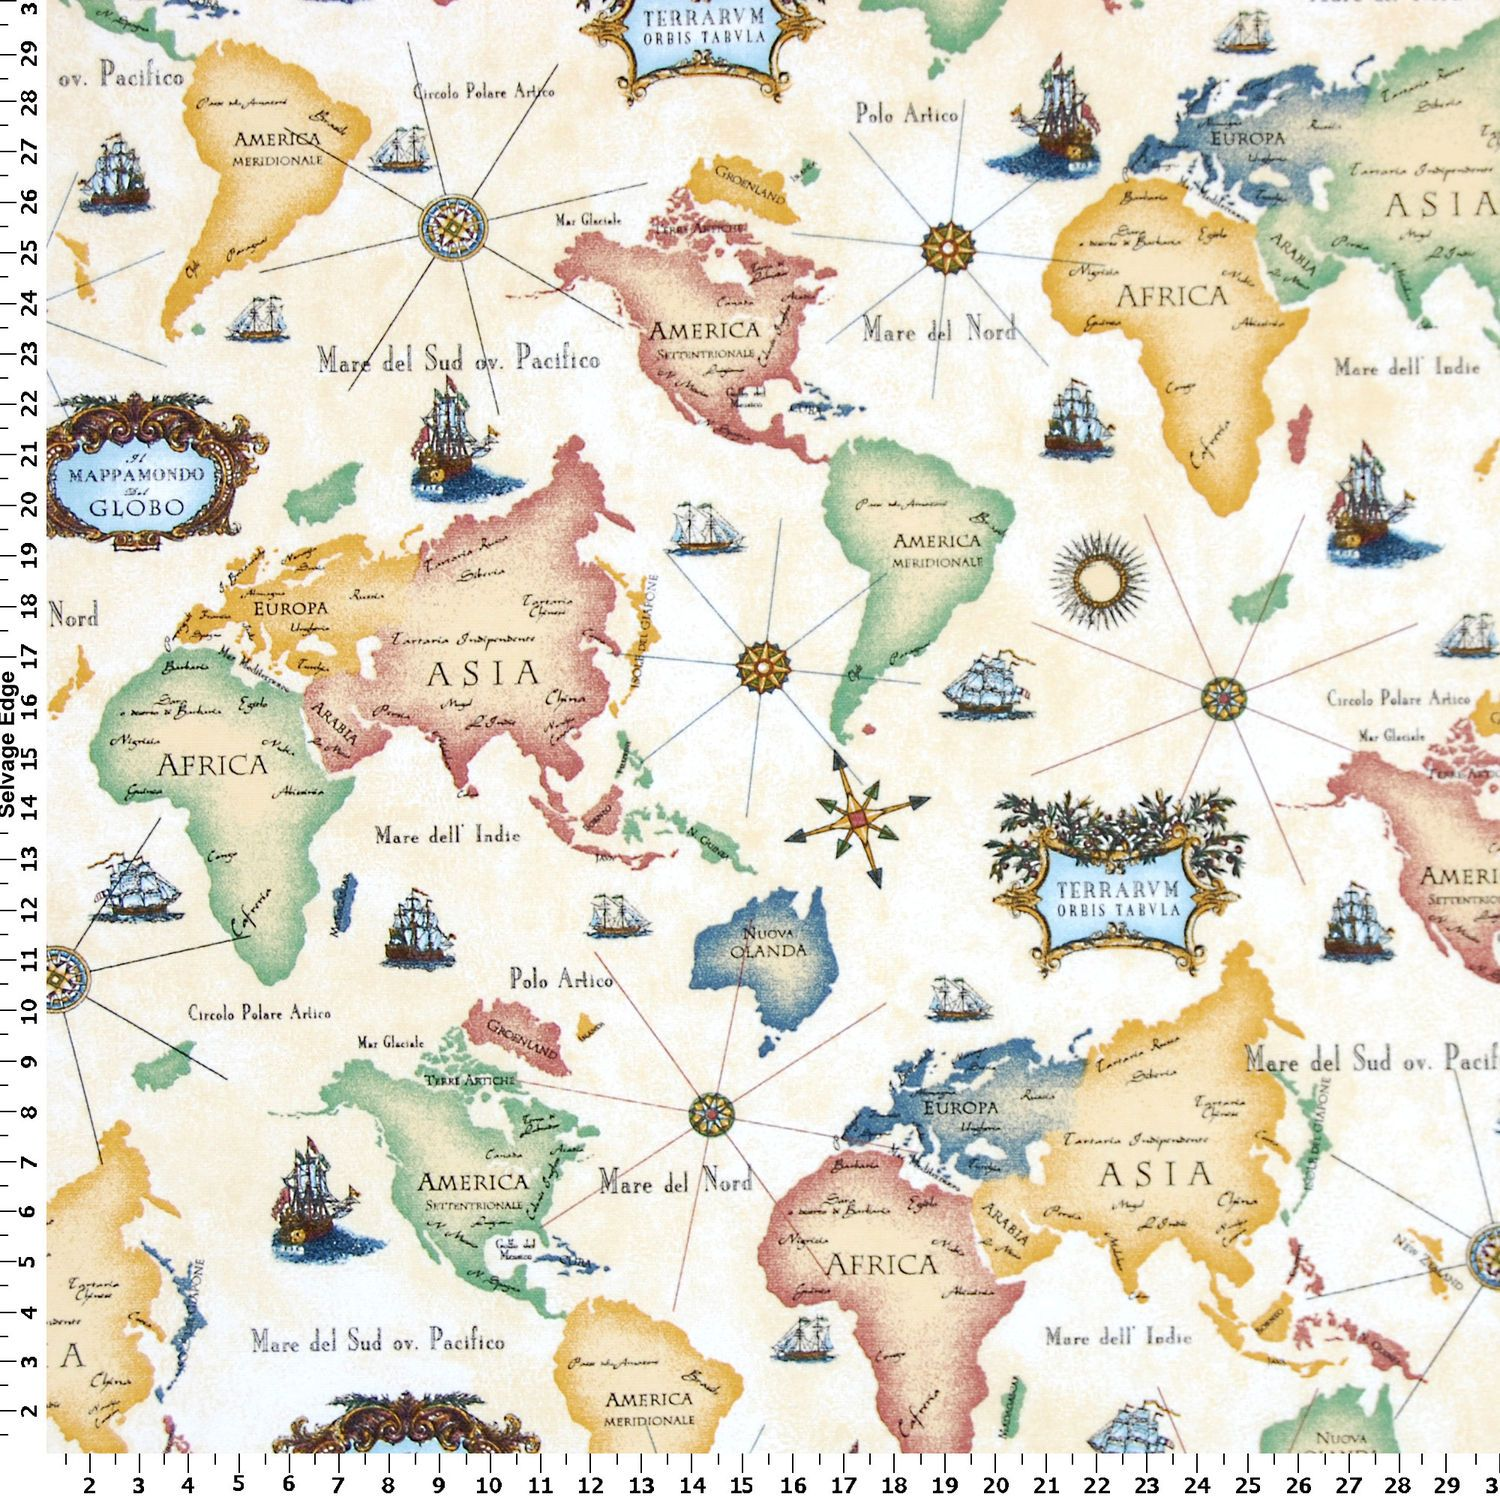 World map on cotton fabric items for sewing pinterest fabrics world map fabric home decor fabric americaasiaafricaeurope yellowredblue draperyupholstery length gumiabroncs Image collections